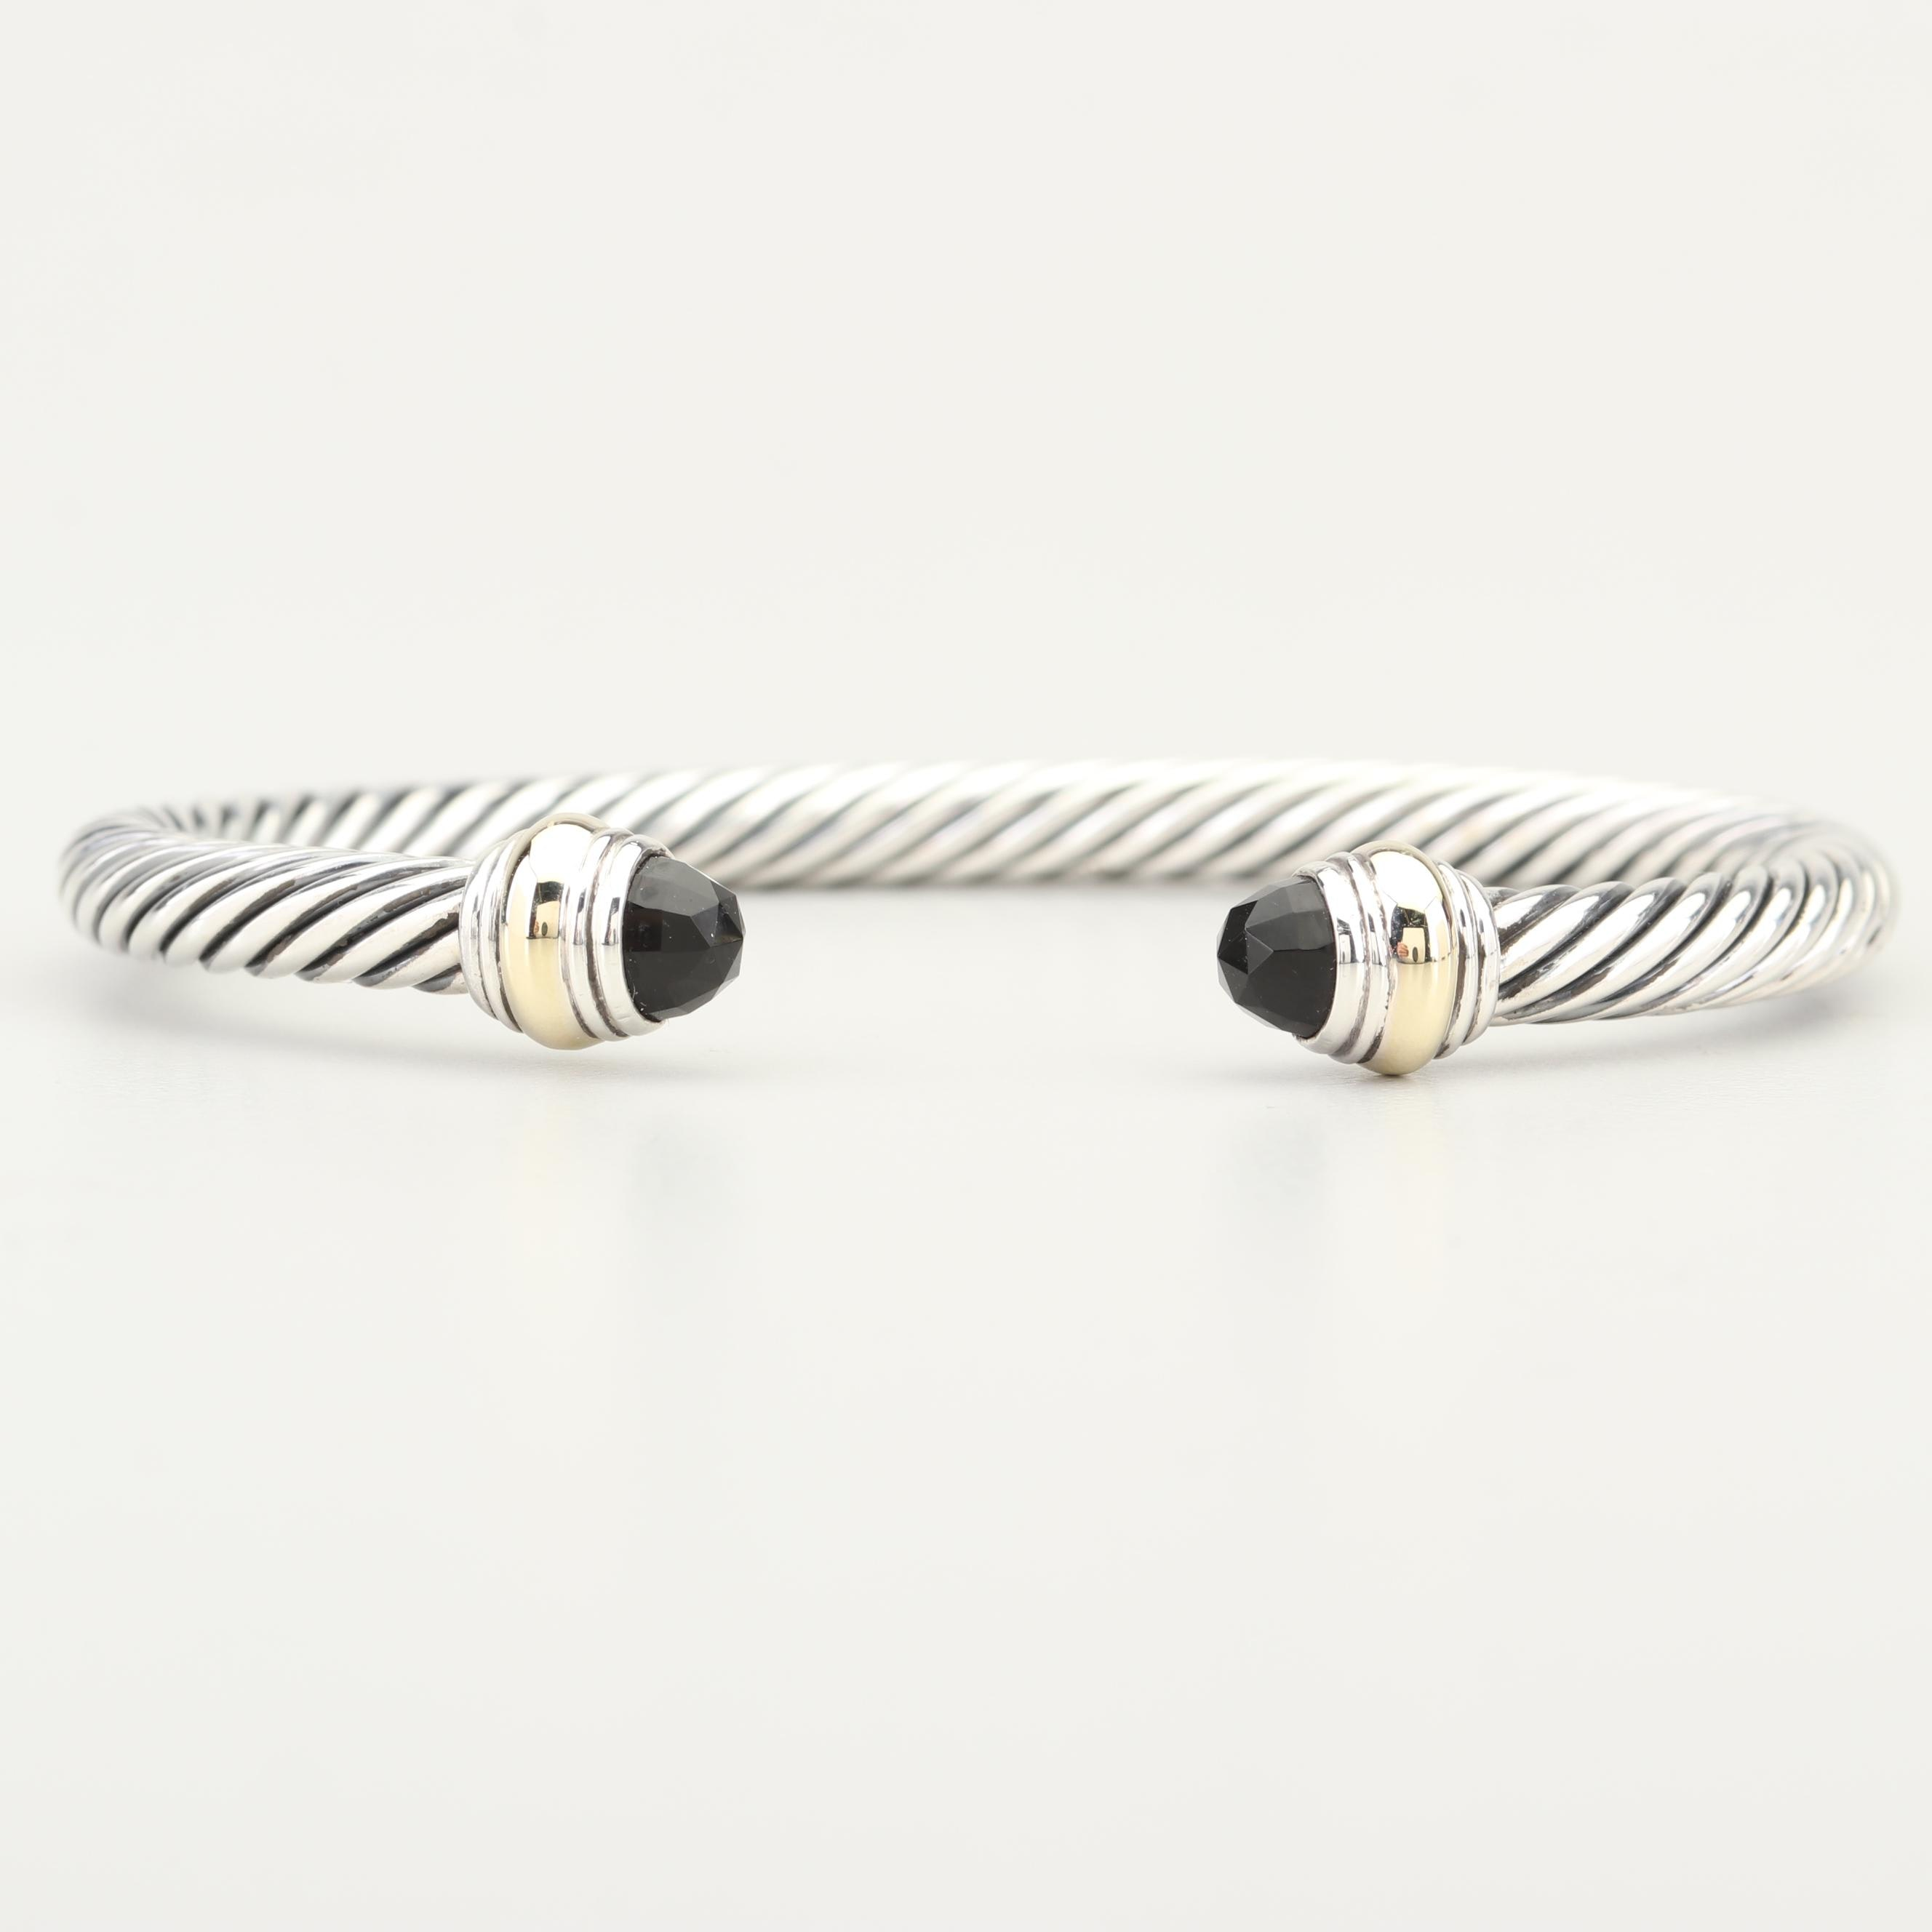 David Yurman Sterling Silver 14K Gold Accented and Black Onyx Cable Bracelet